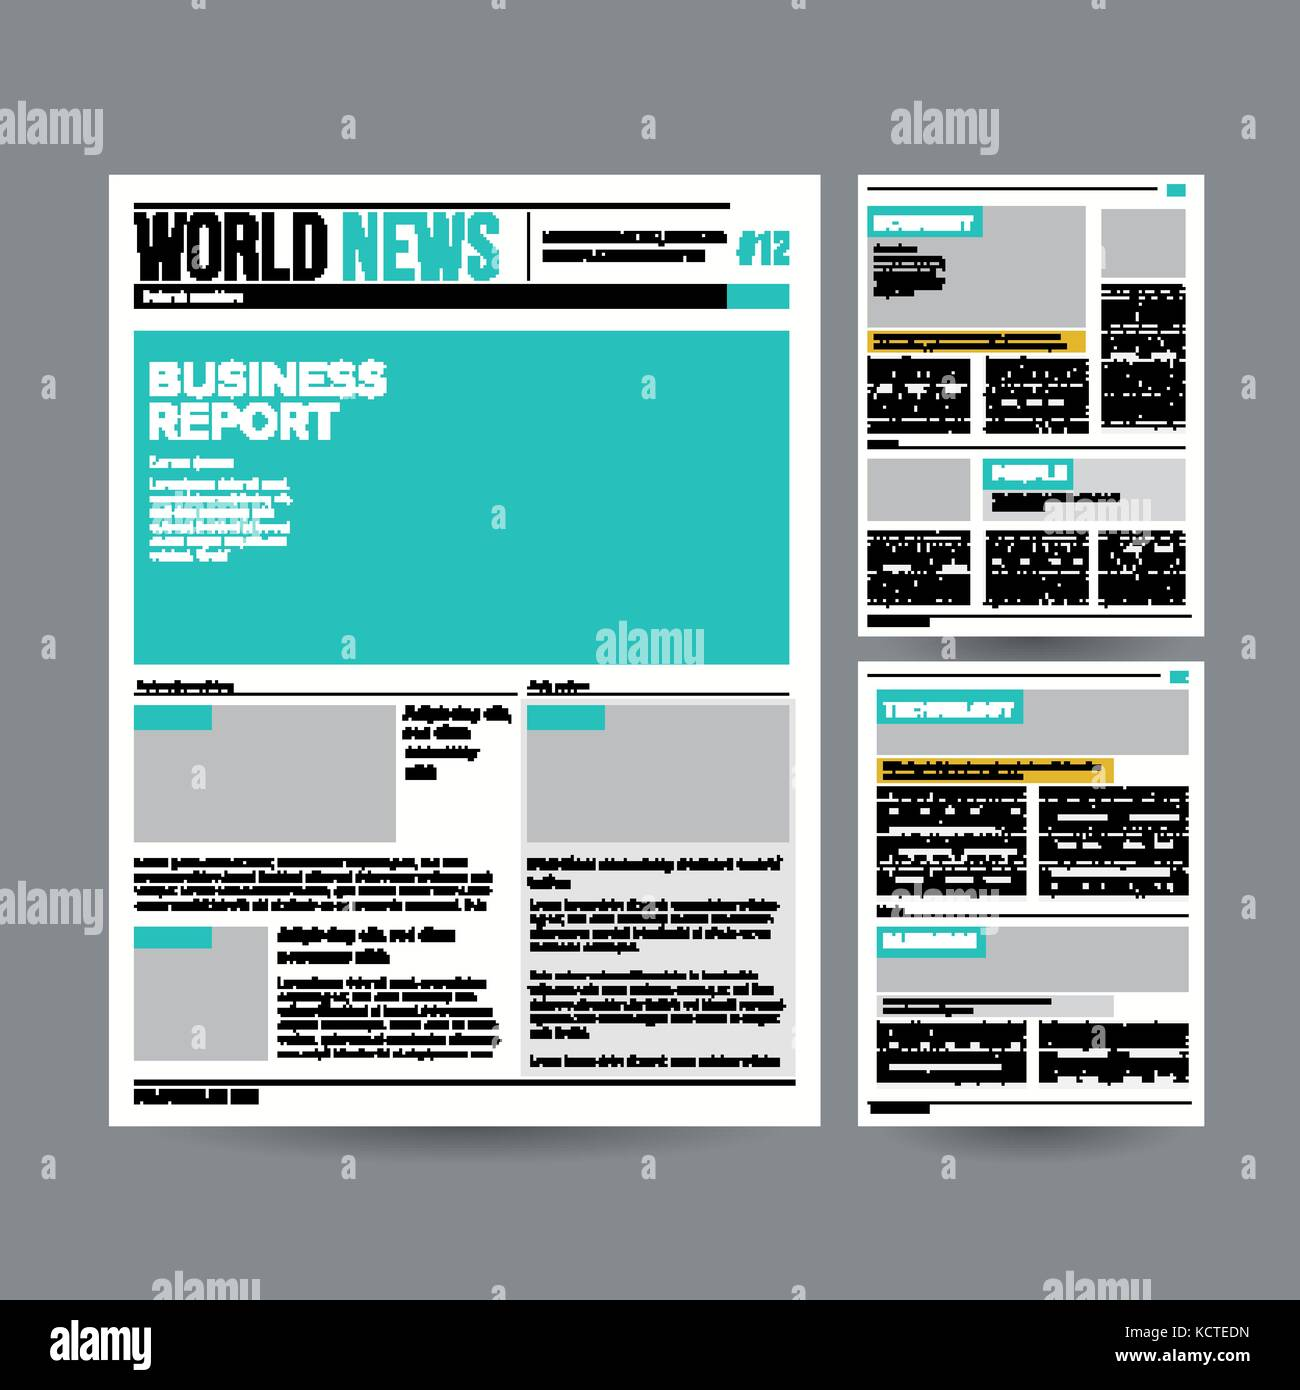 Newspaper Design Template Vector. Modern Newspaper Layout Template.  Financial Articles, Business Information. World News Economy Headlines.